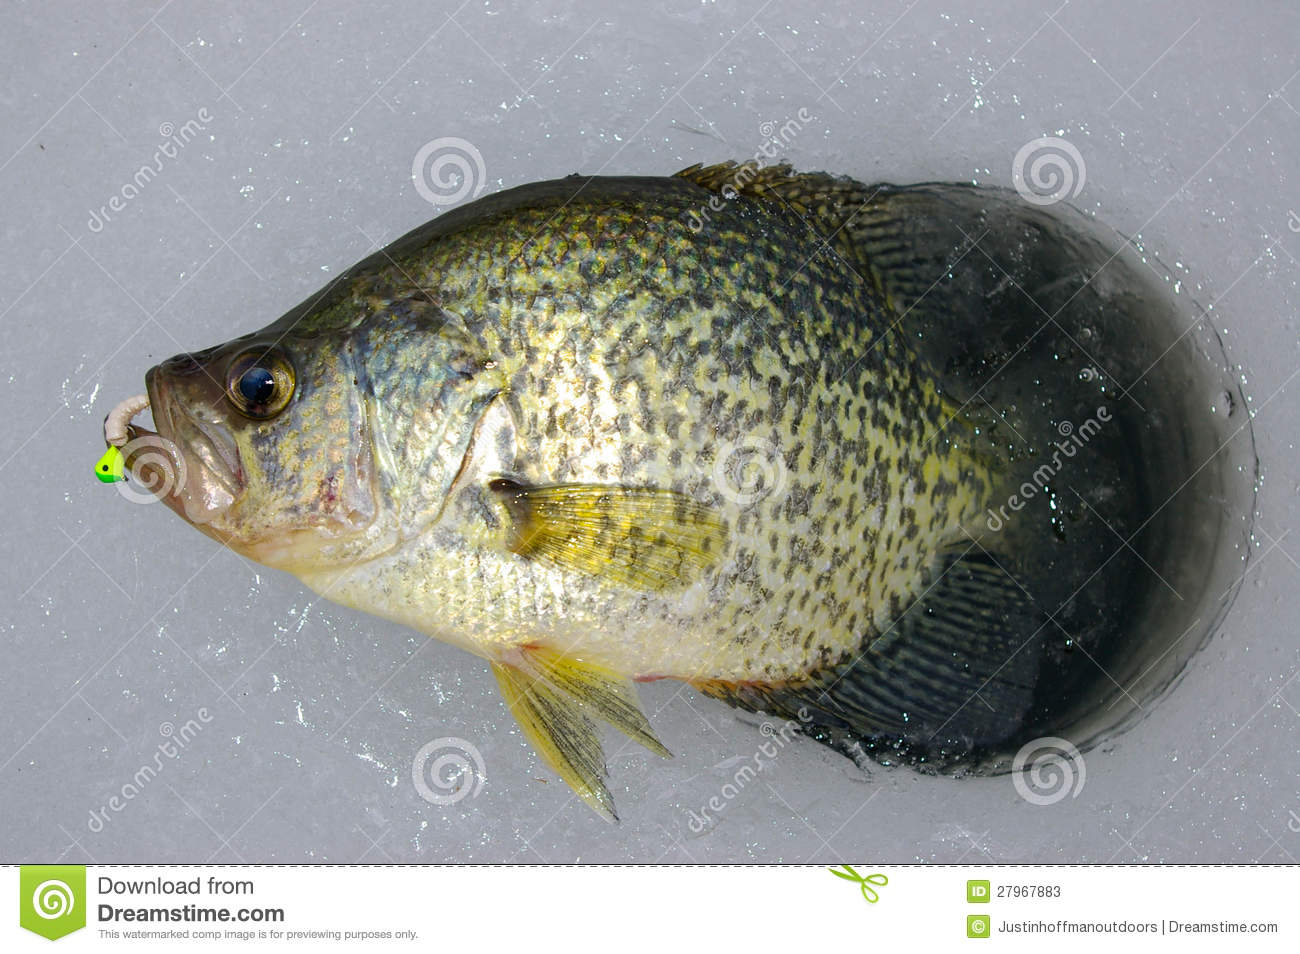 Ice fishing crappie stock photos image 27967883 for Crappie ice fishing